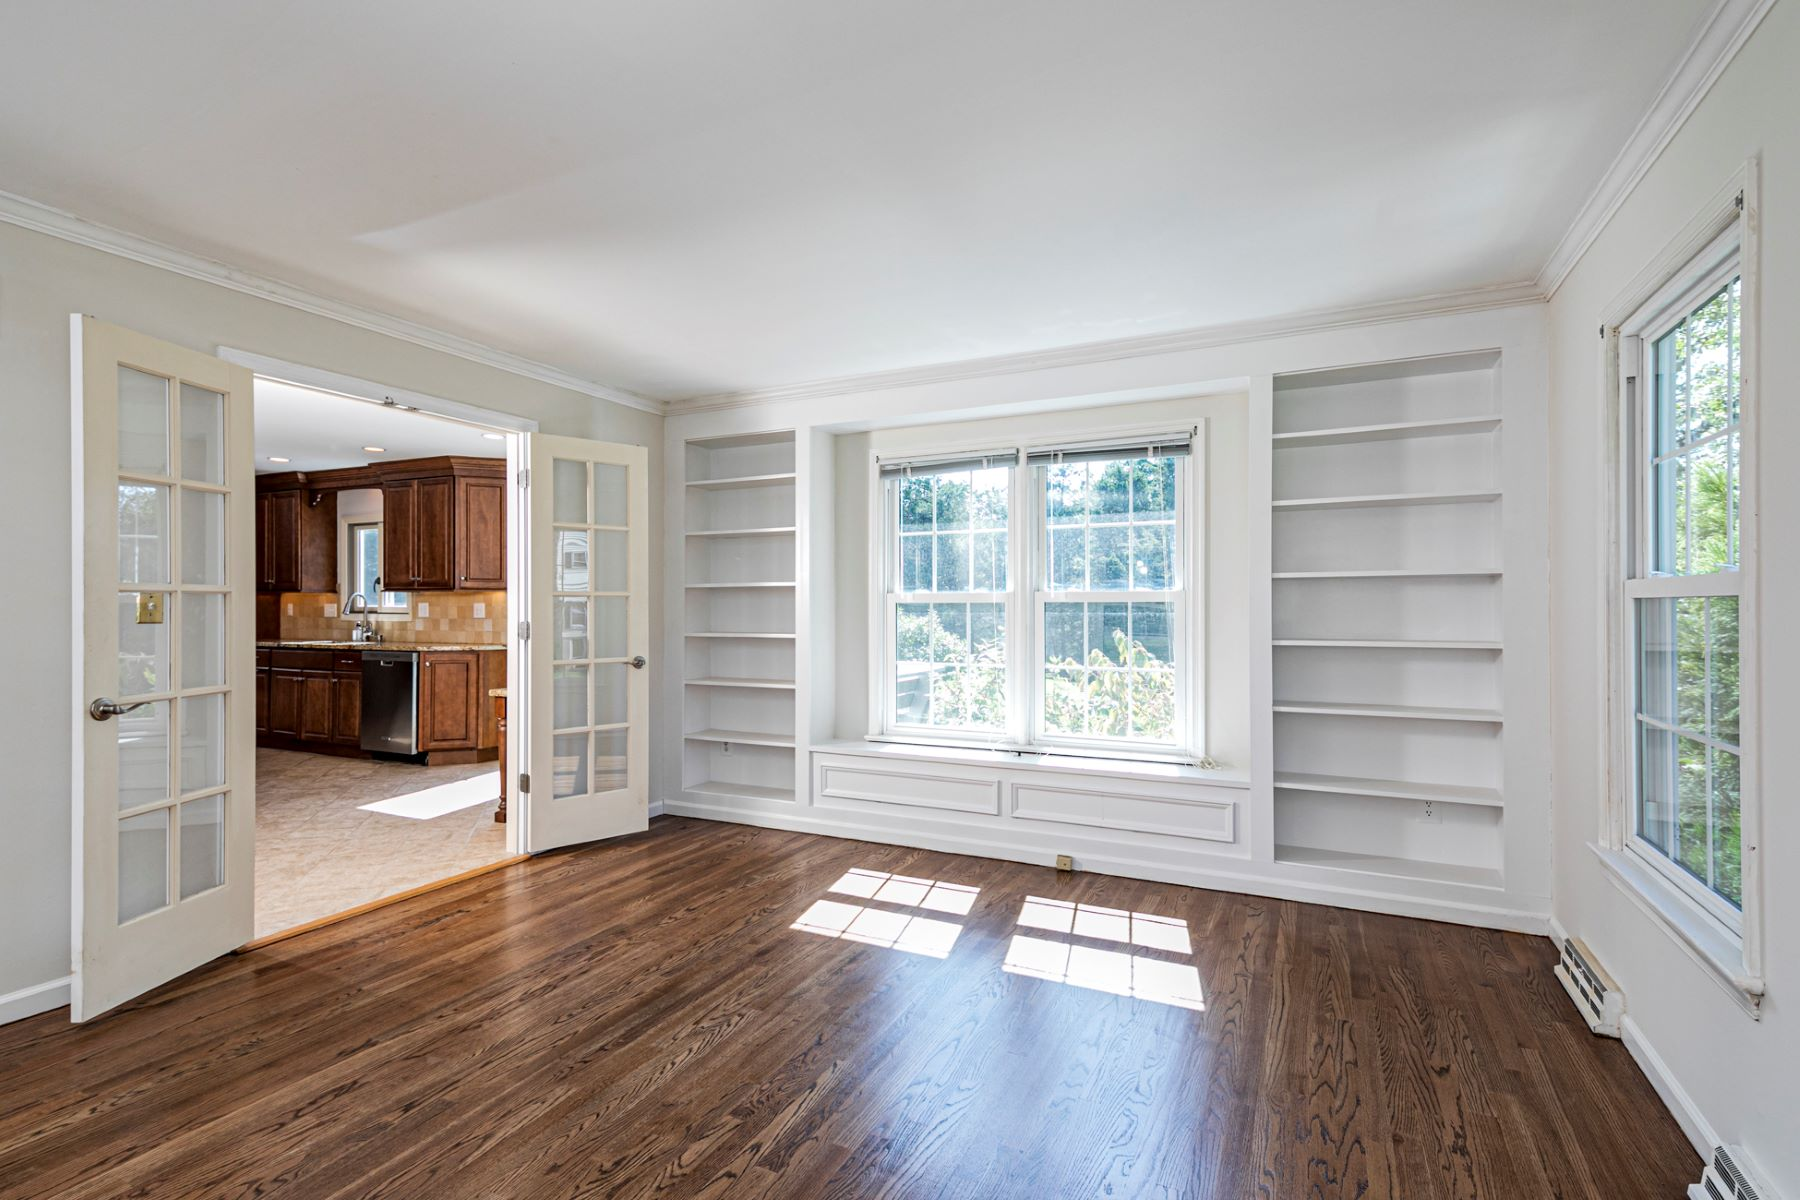 Additional photo for property listing at All About Lifestyle Here 4 Meadow Lane, Pennington, New Jersey 08534 United States